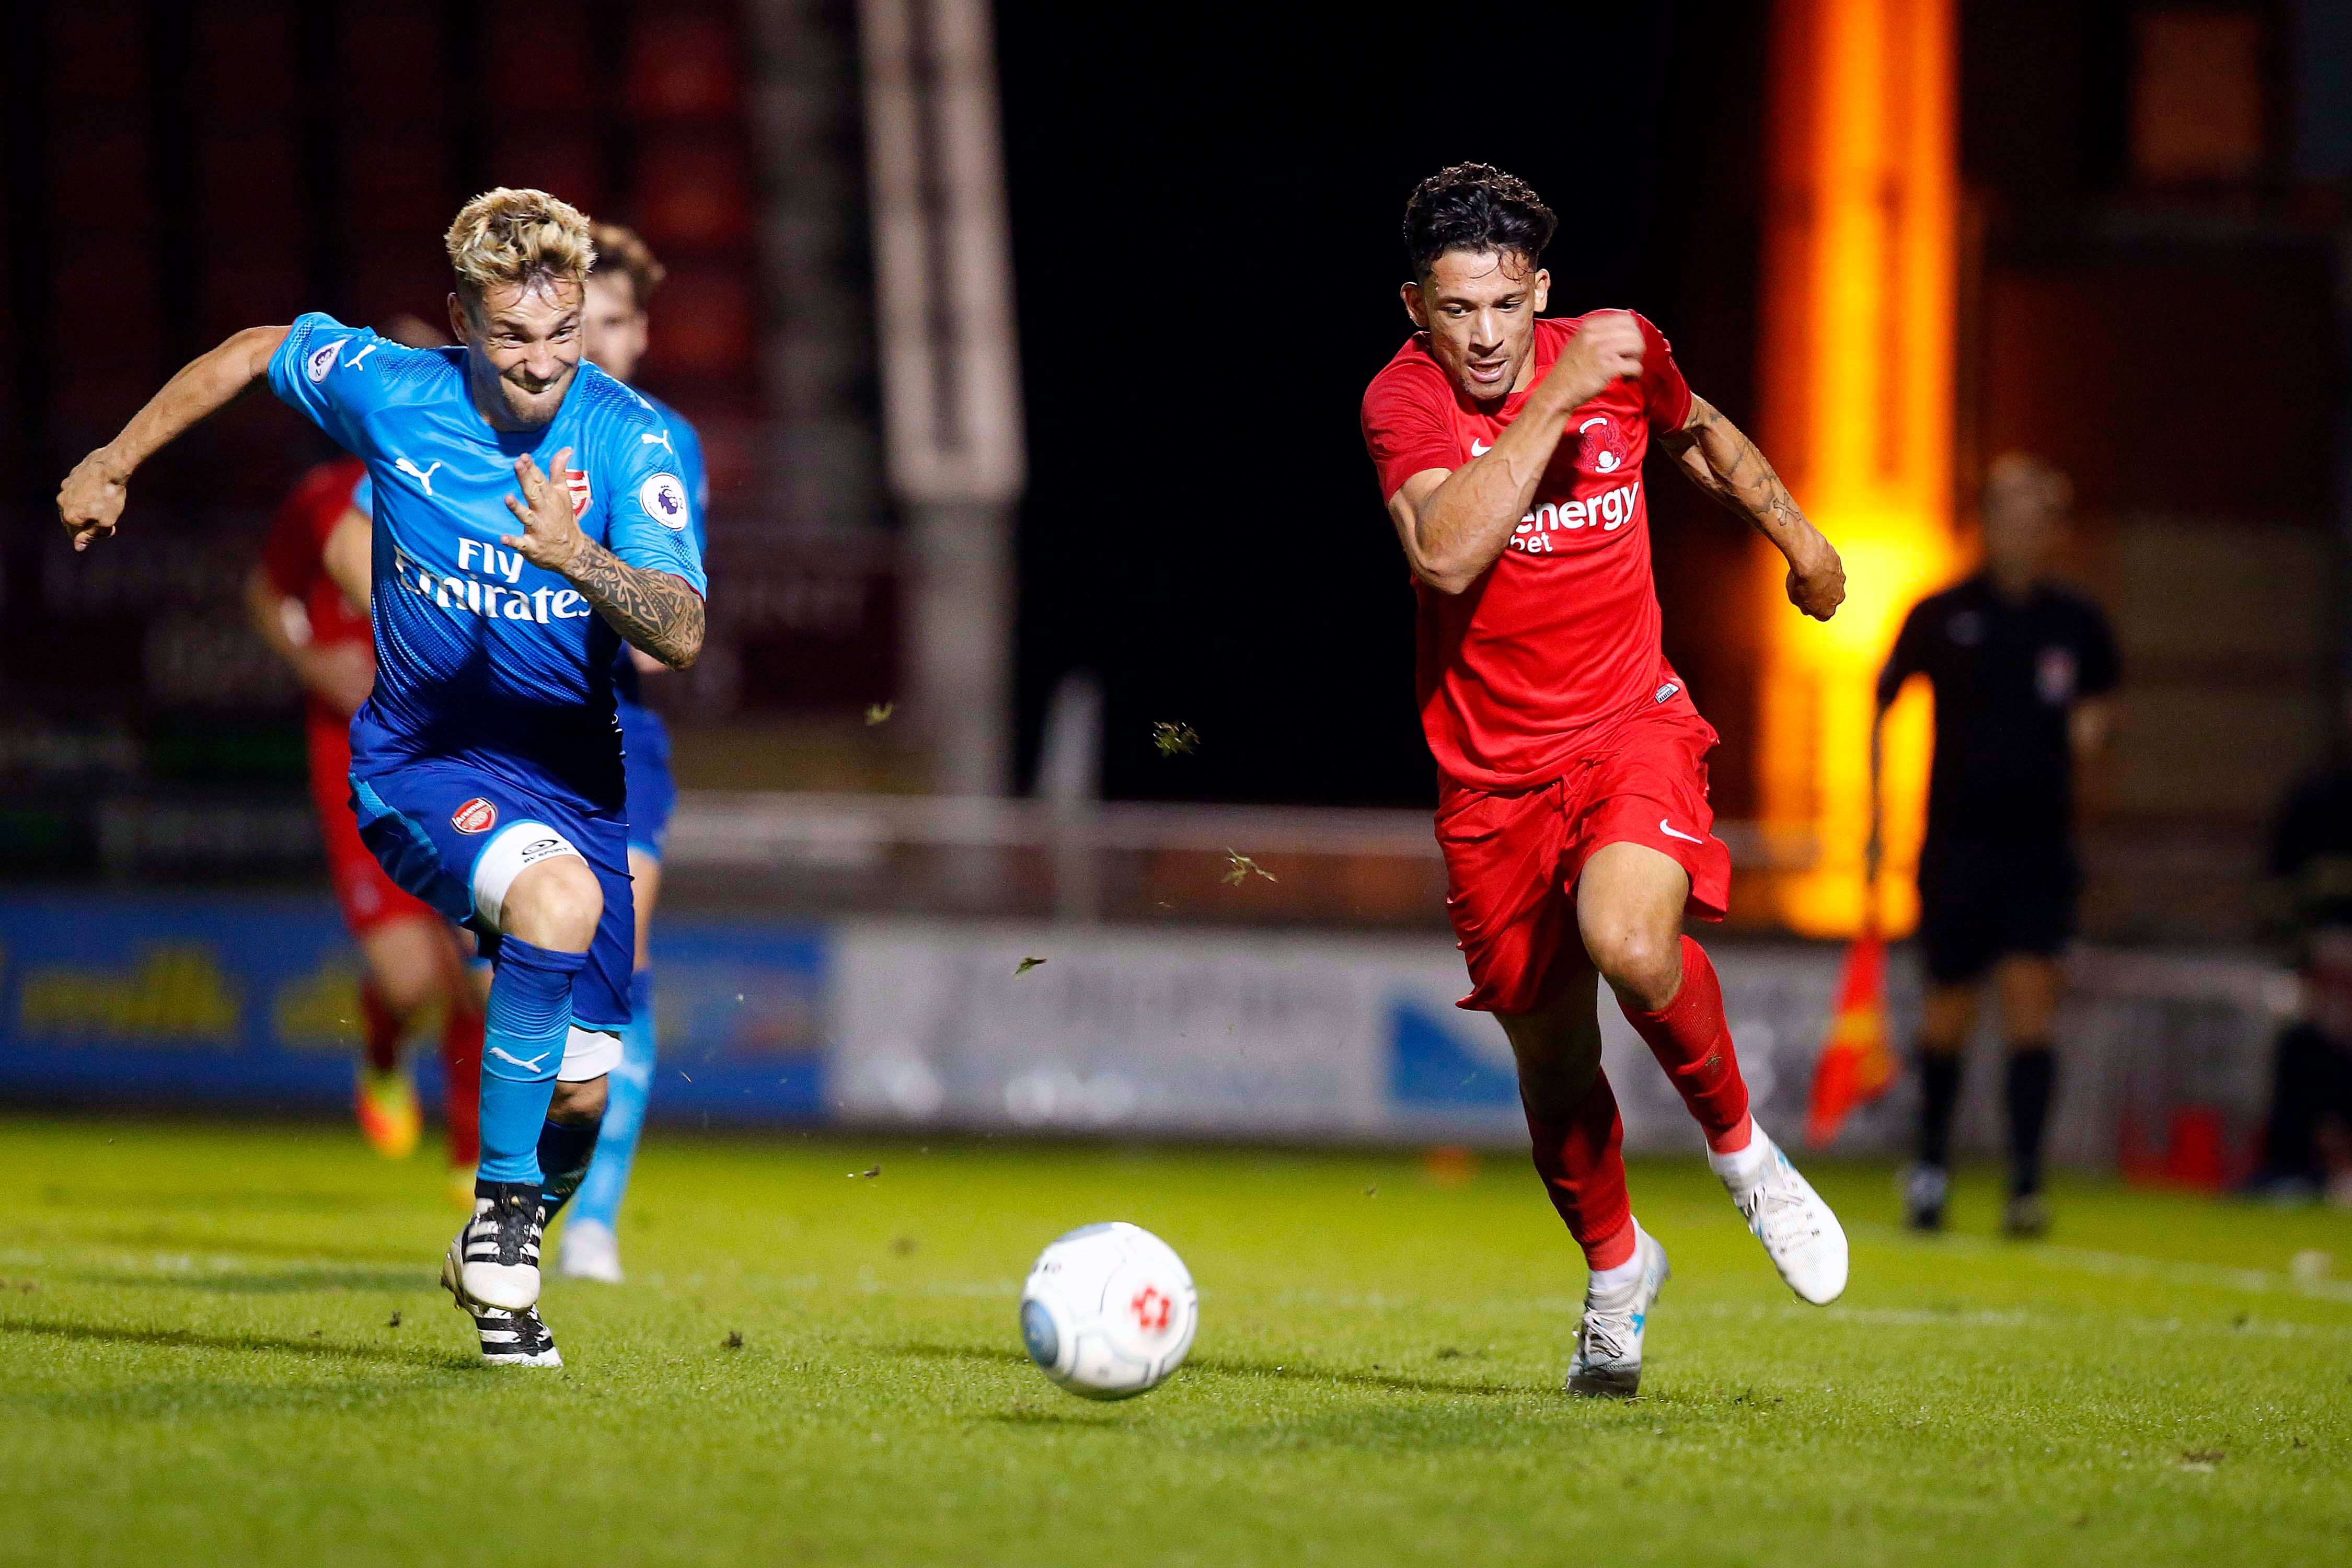 Orient Win To Climb Into Top Four Spot